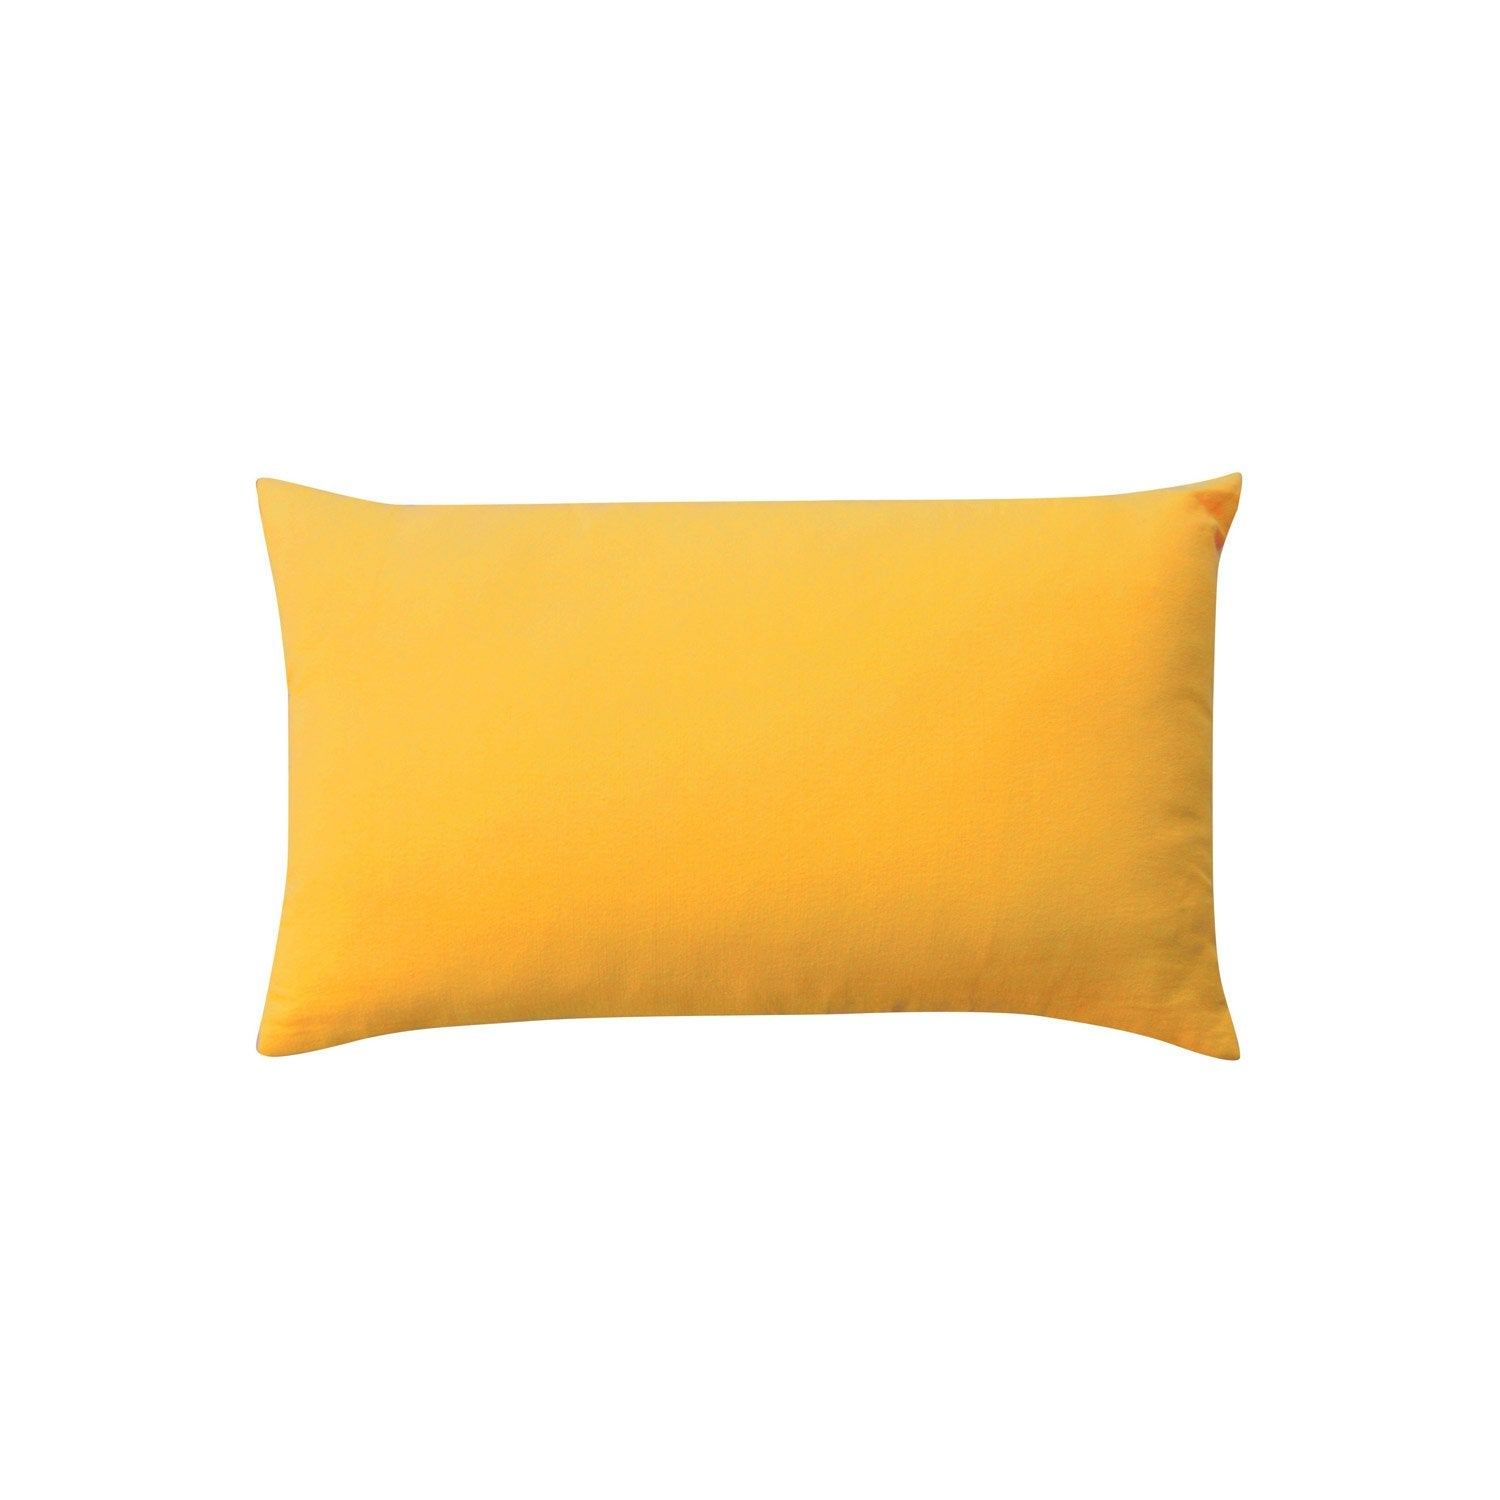 Coussin l a inspire jaune x h 2 8 cm leroy merlin - Coussin leroy merlin ...